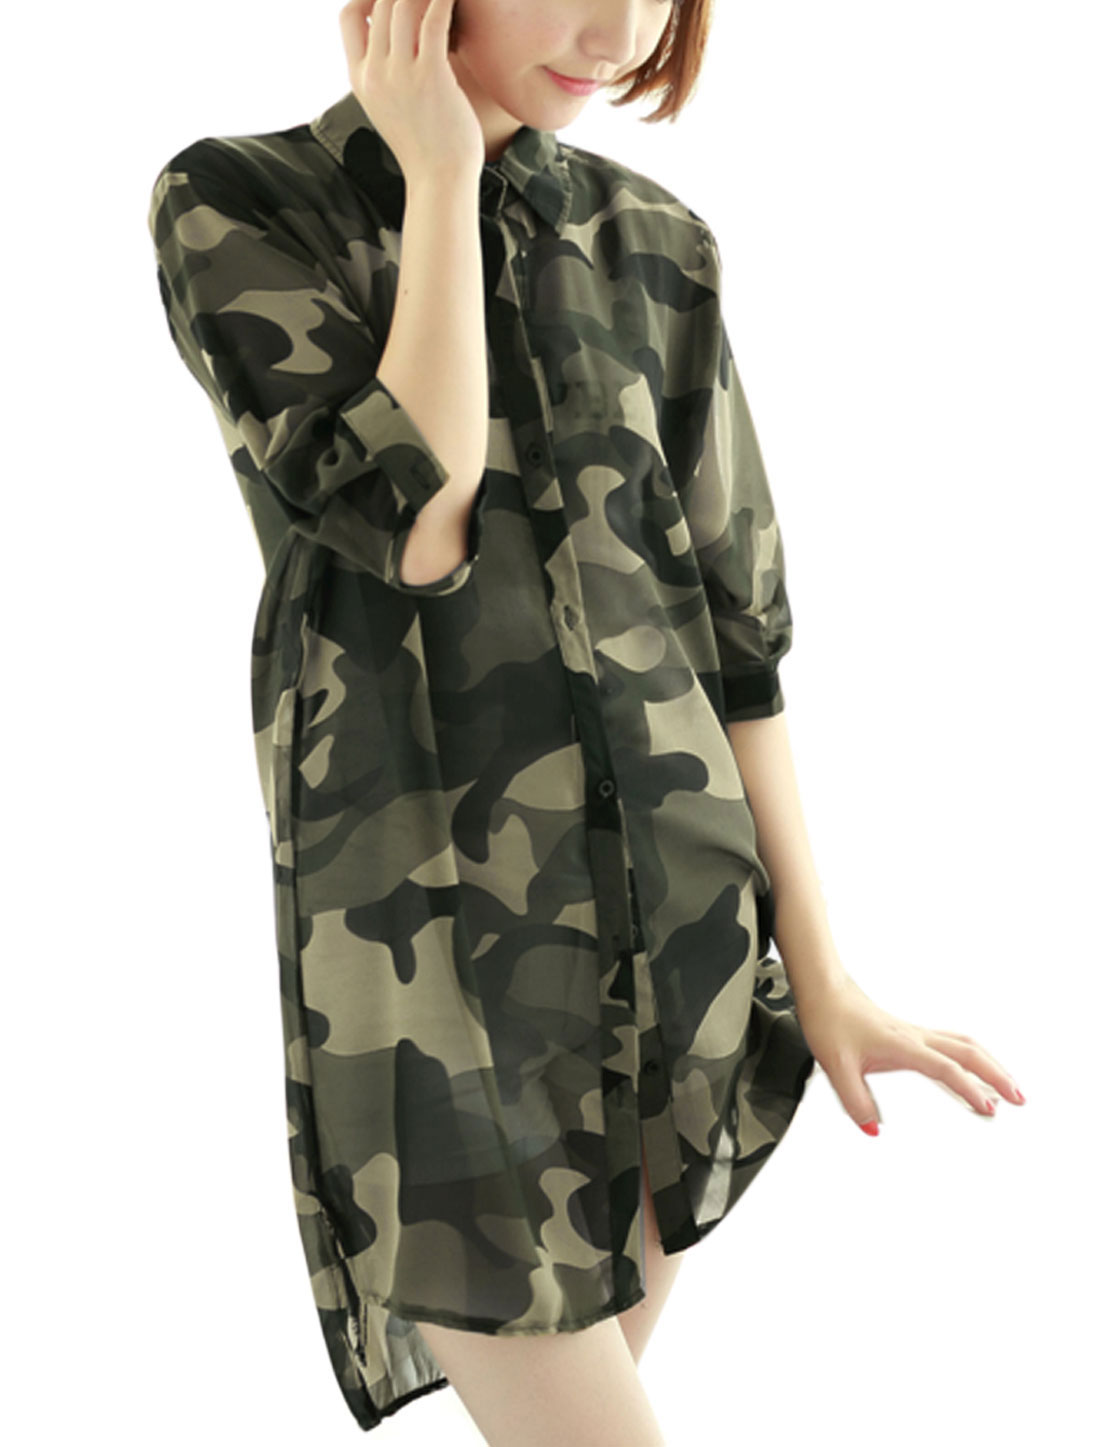 Lady Elbow Sleeve Single Breasted Camouflage Pattern Chiffon Tunic Shirt Army Green XS